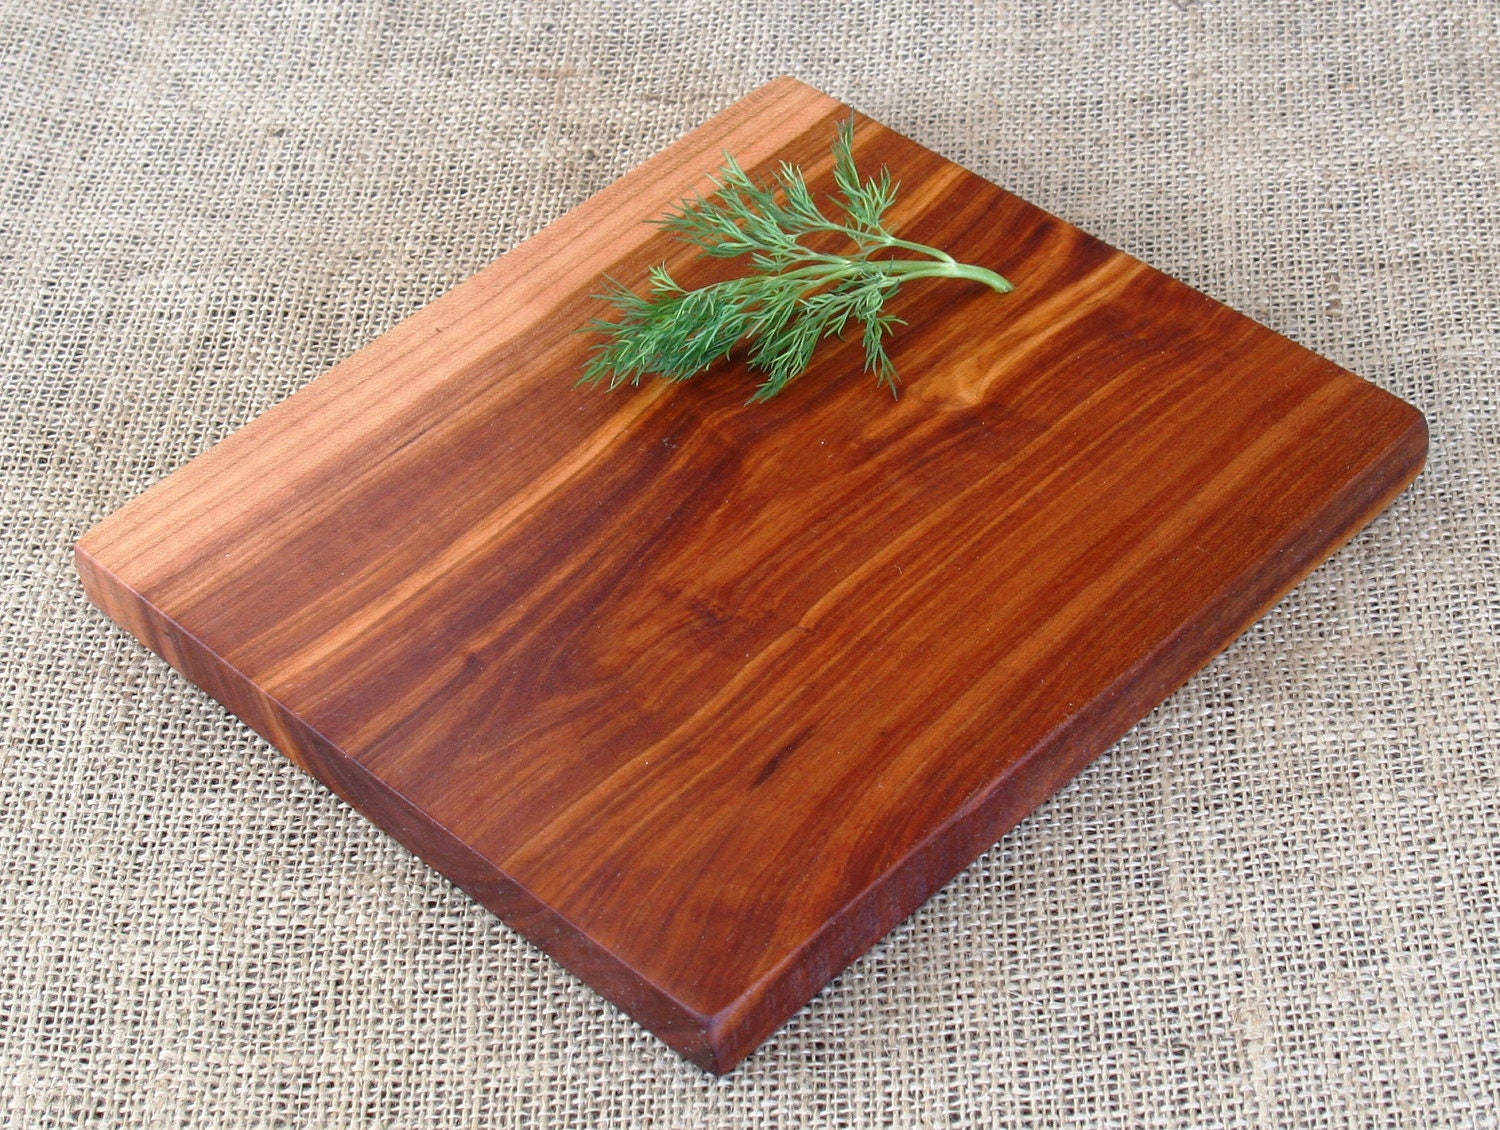 Wood slab cutting board